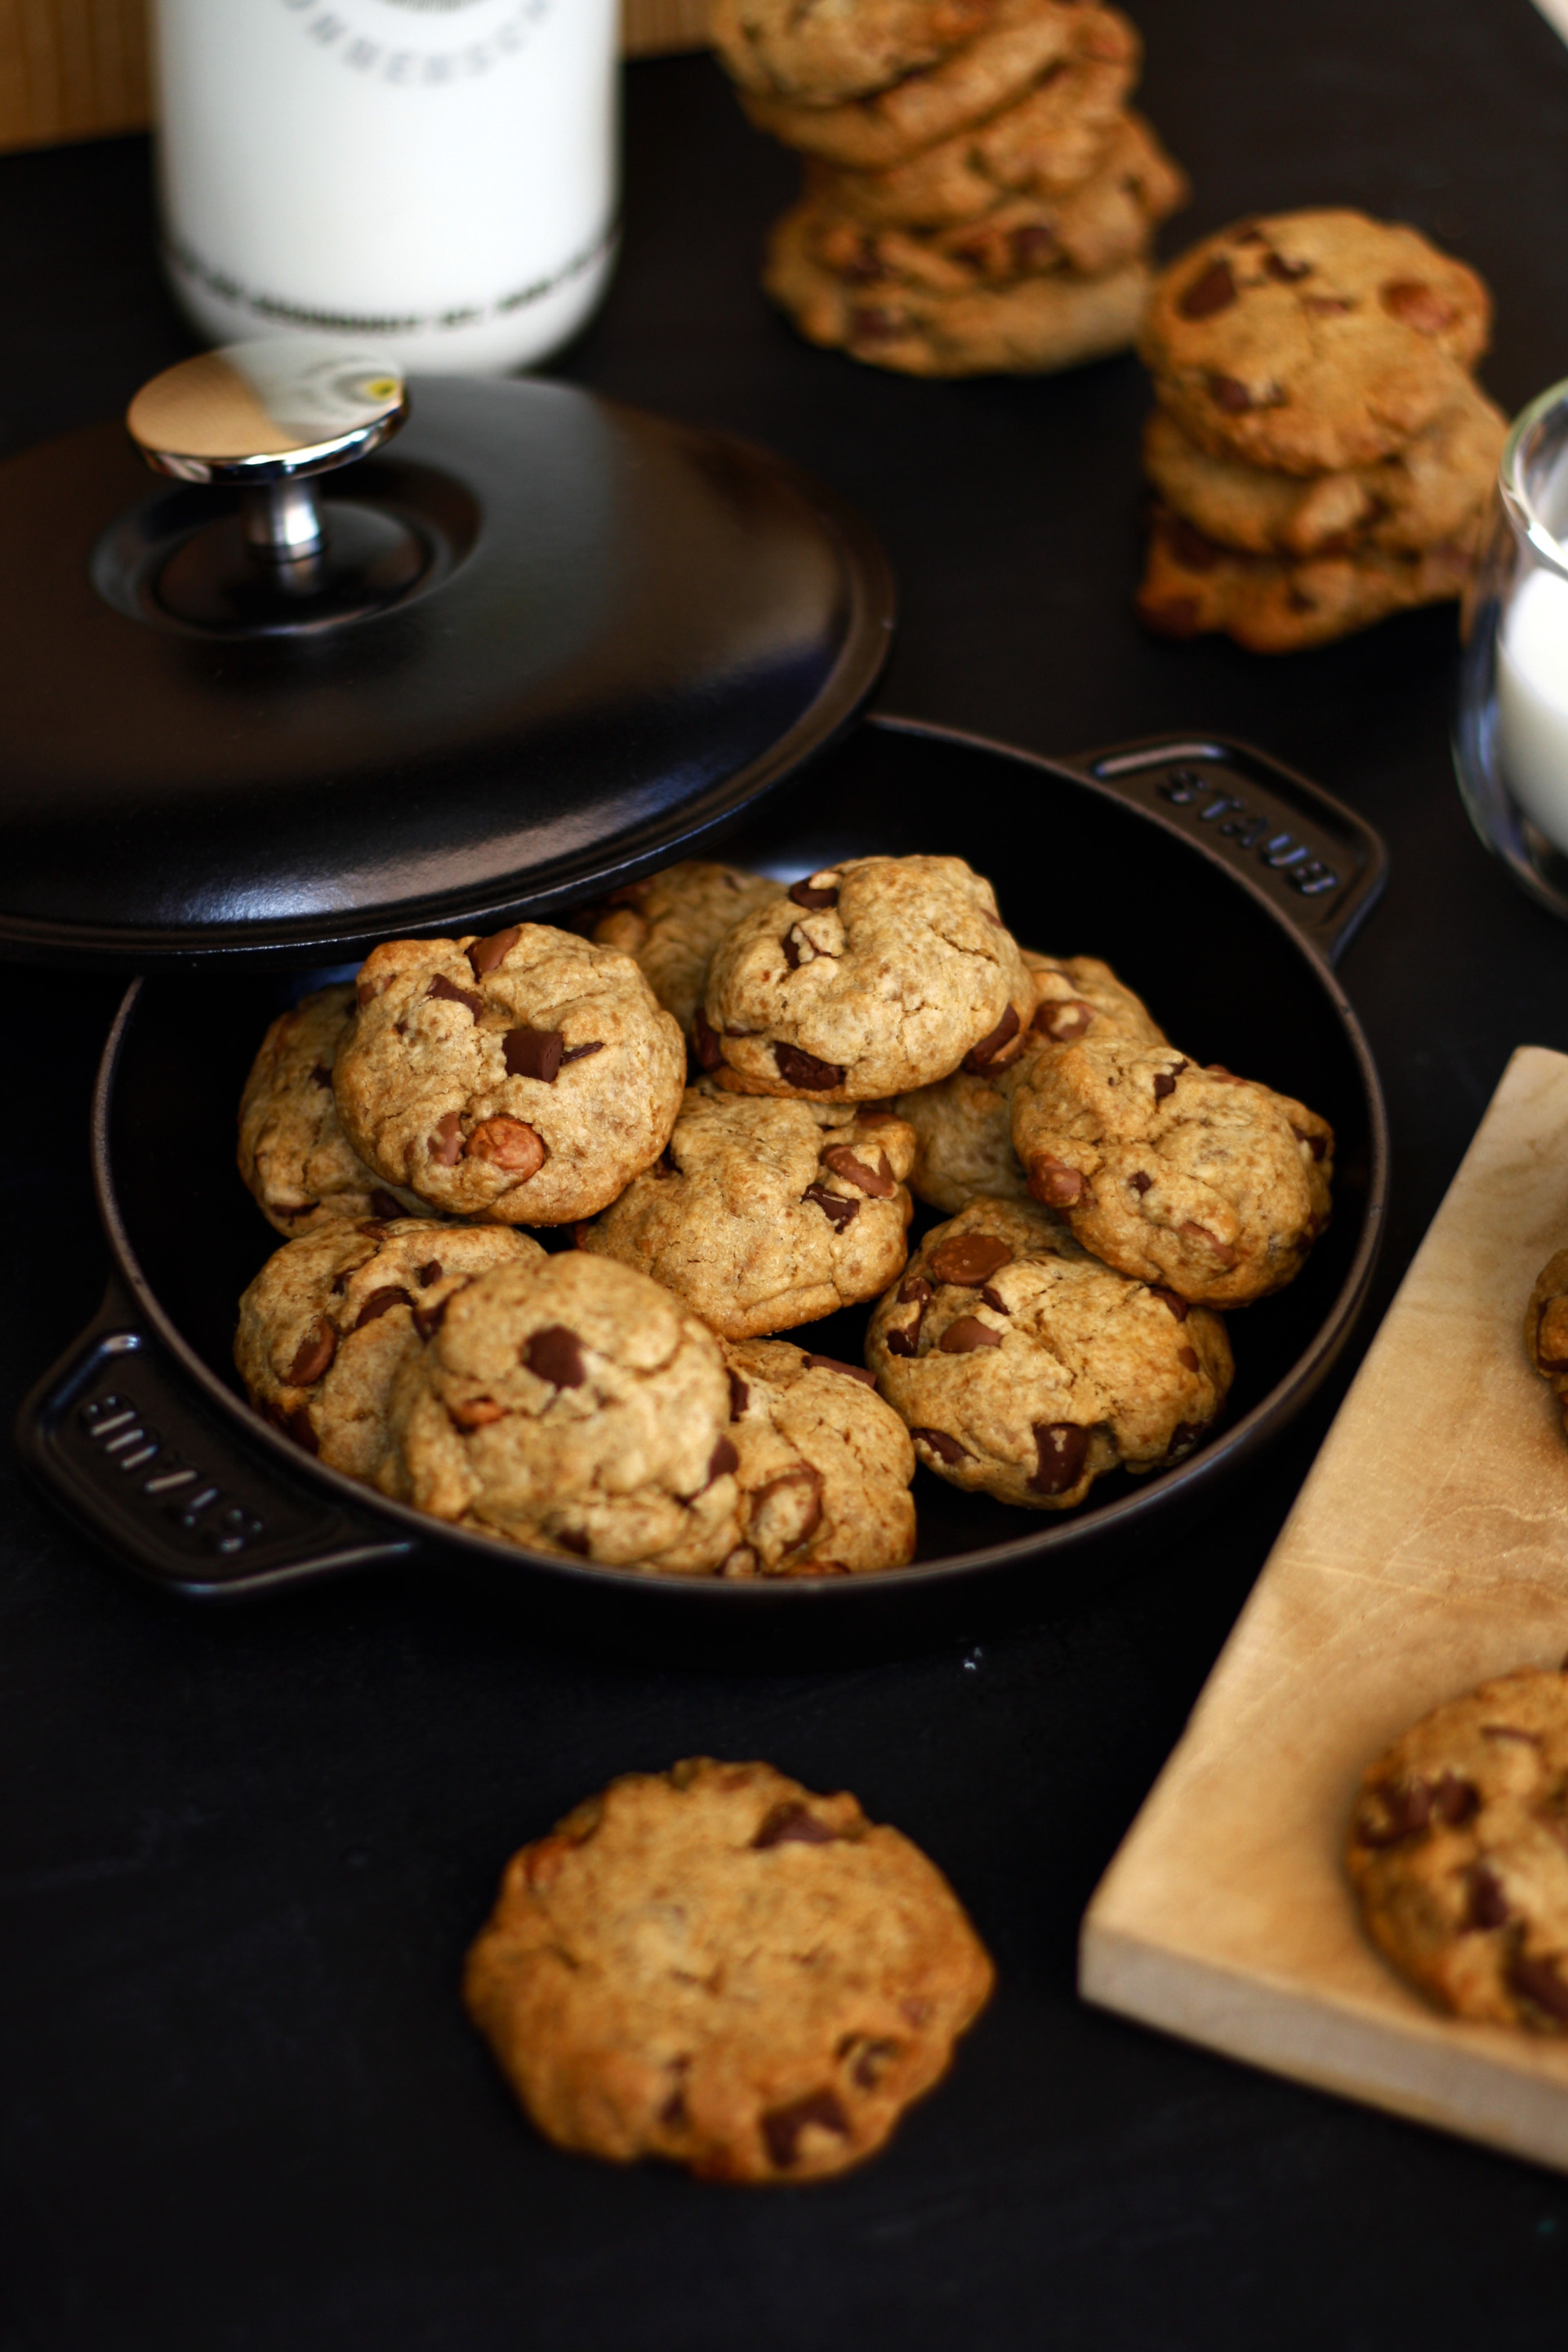 Chocolate Chip Cookies by http://babyrockmyday.com/chocolate-chip-cookies/